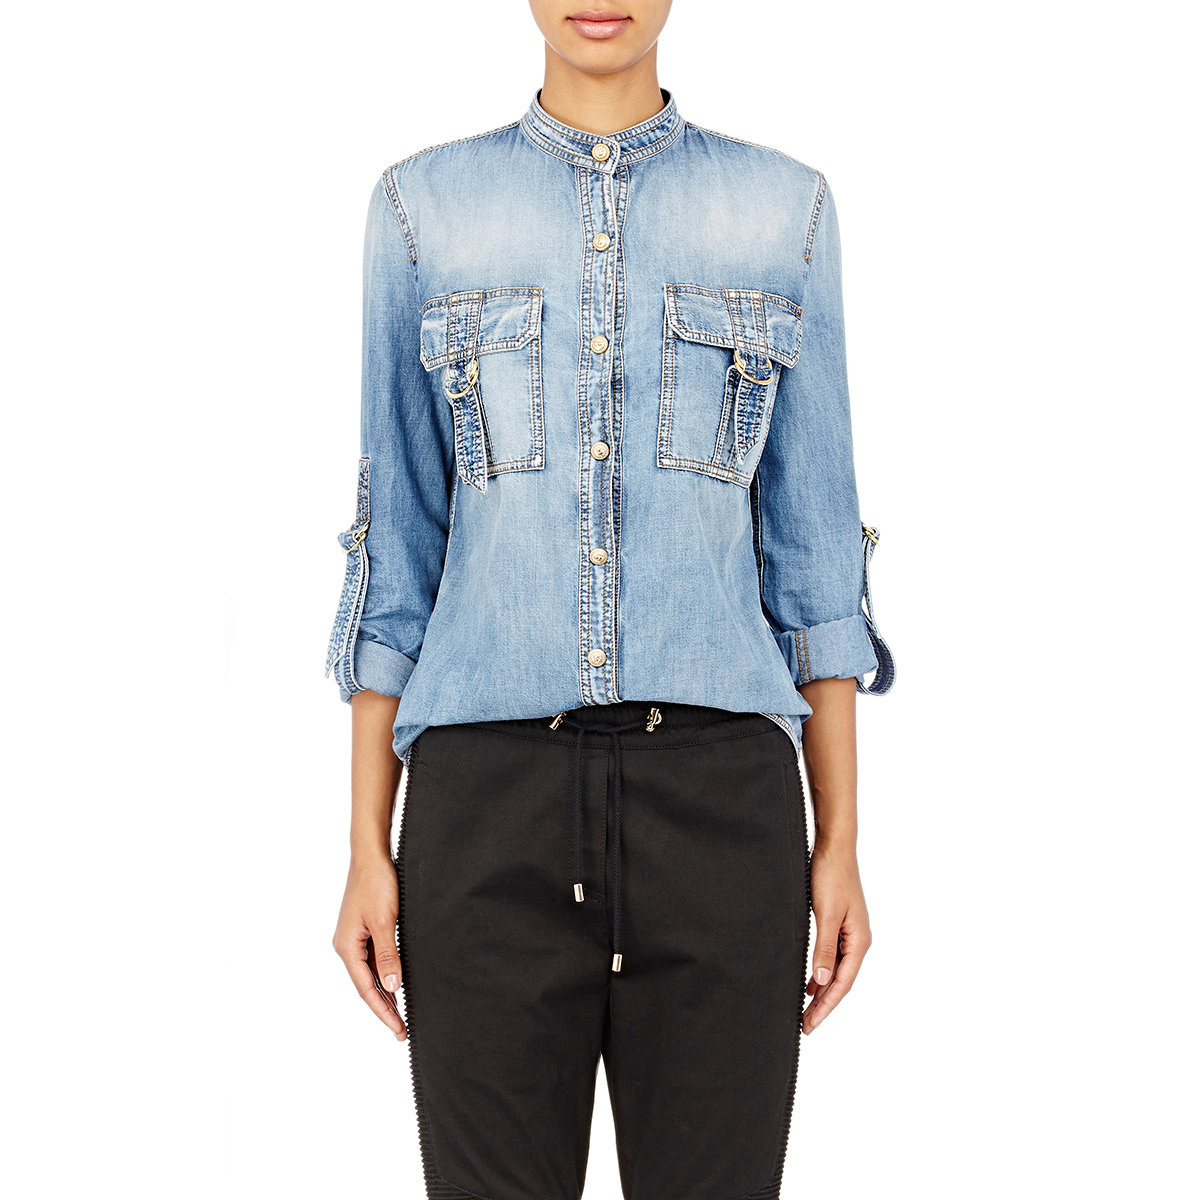 Buy Button-Down Strass Denim Shirt by Balmain at $ at luxurycheckout. Similar products are available.